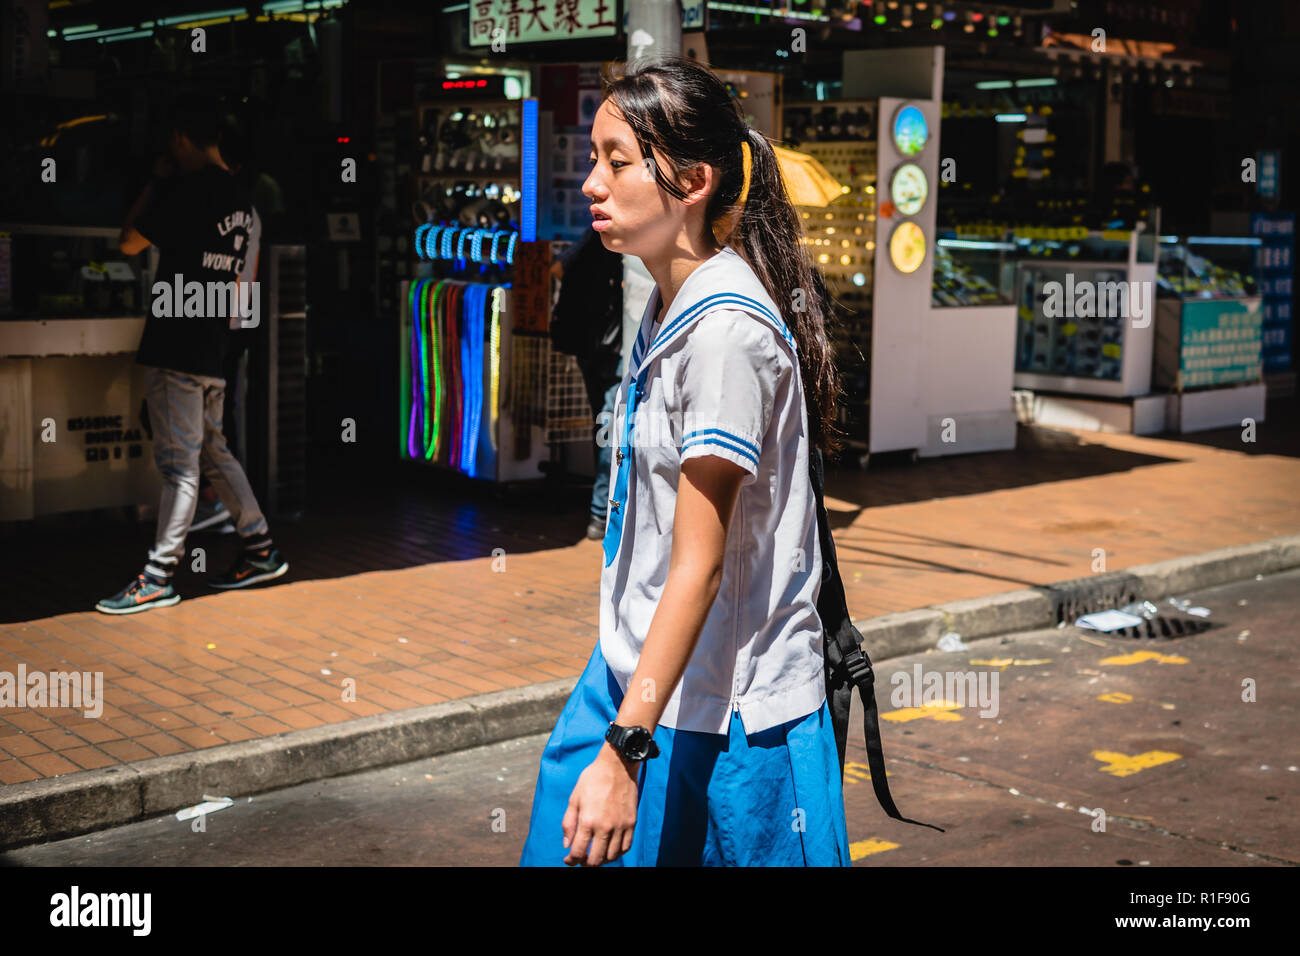 An exhausted schoolgirl is walking home in Hong Kong during a heat wave. - Stock Image